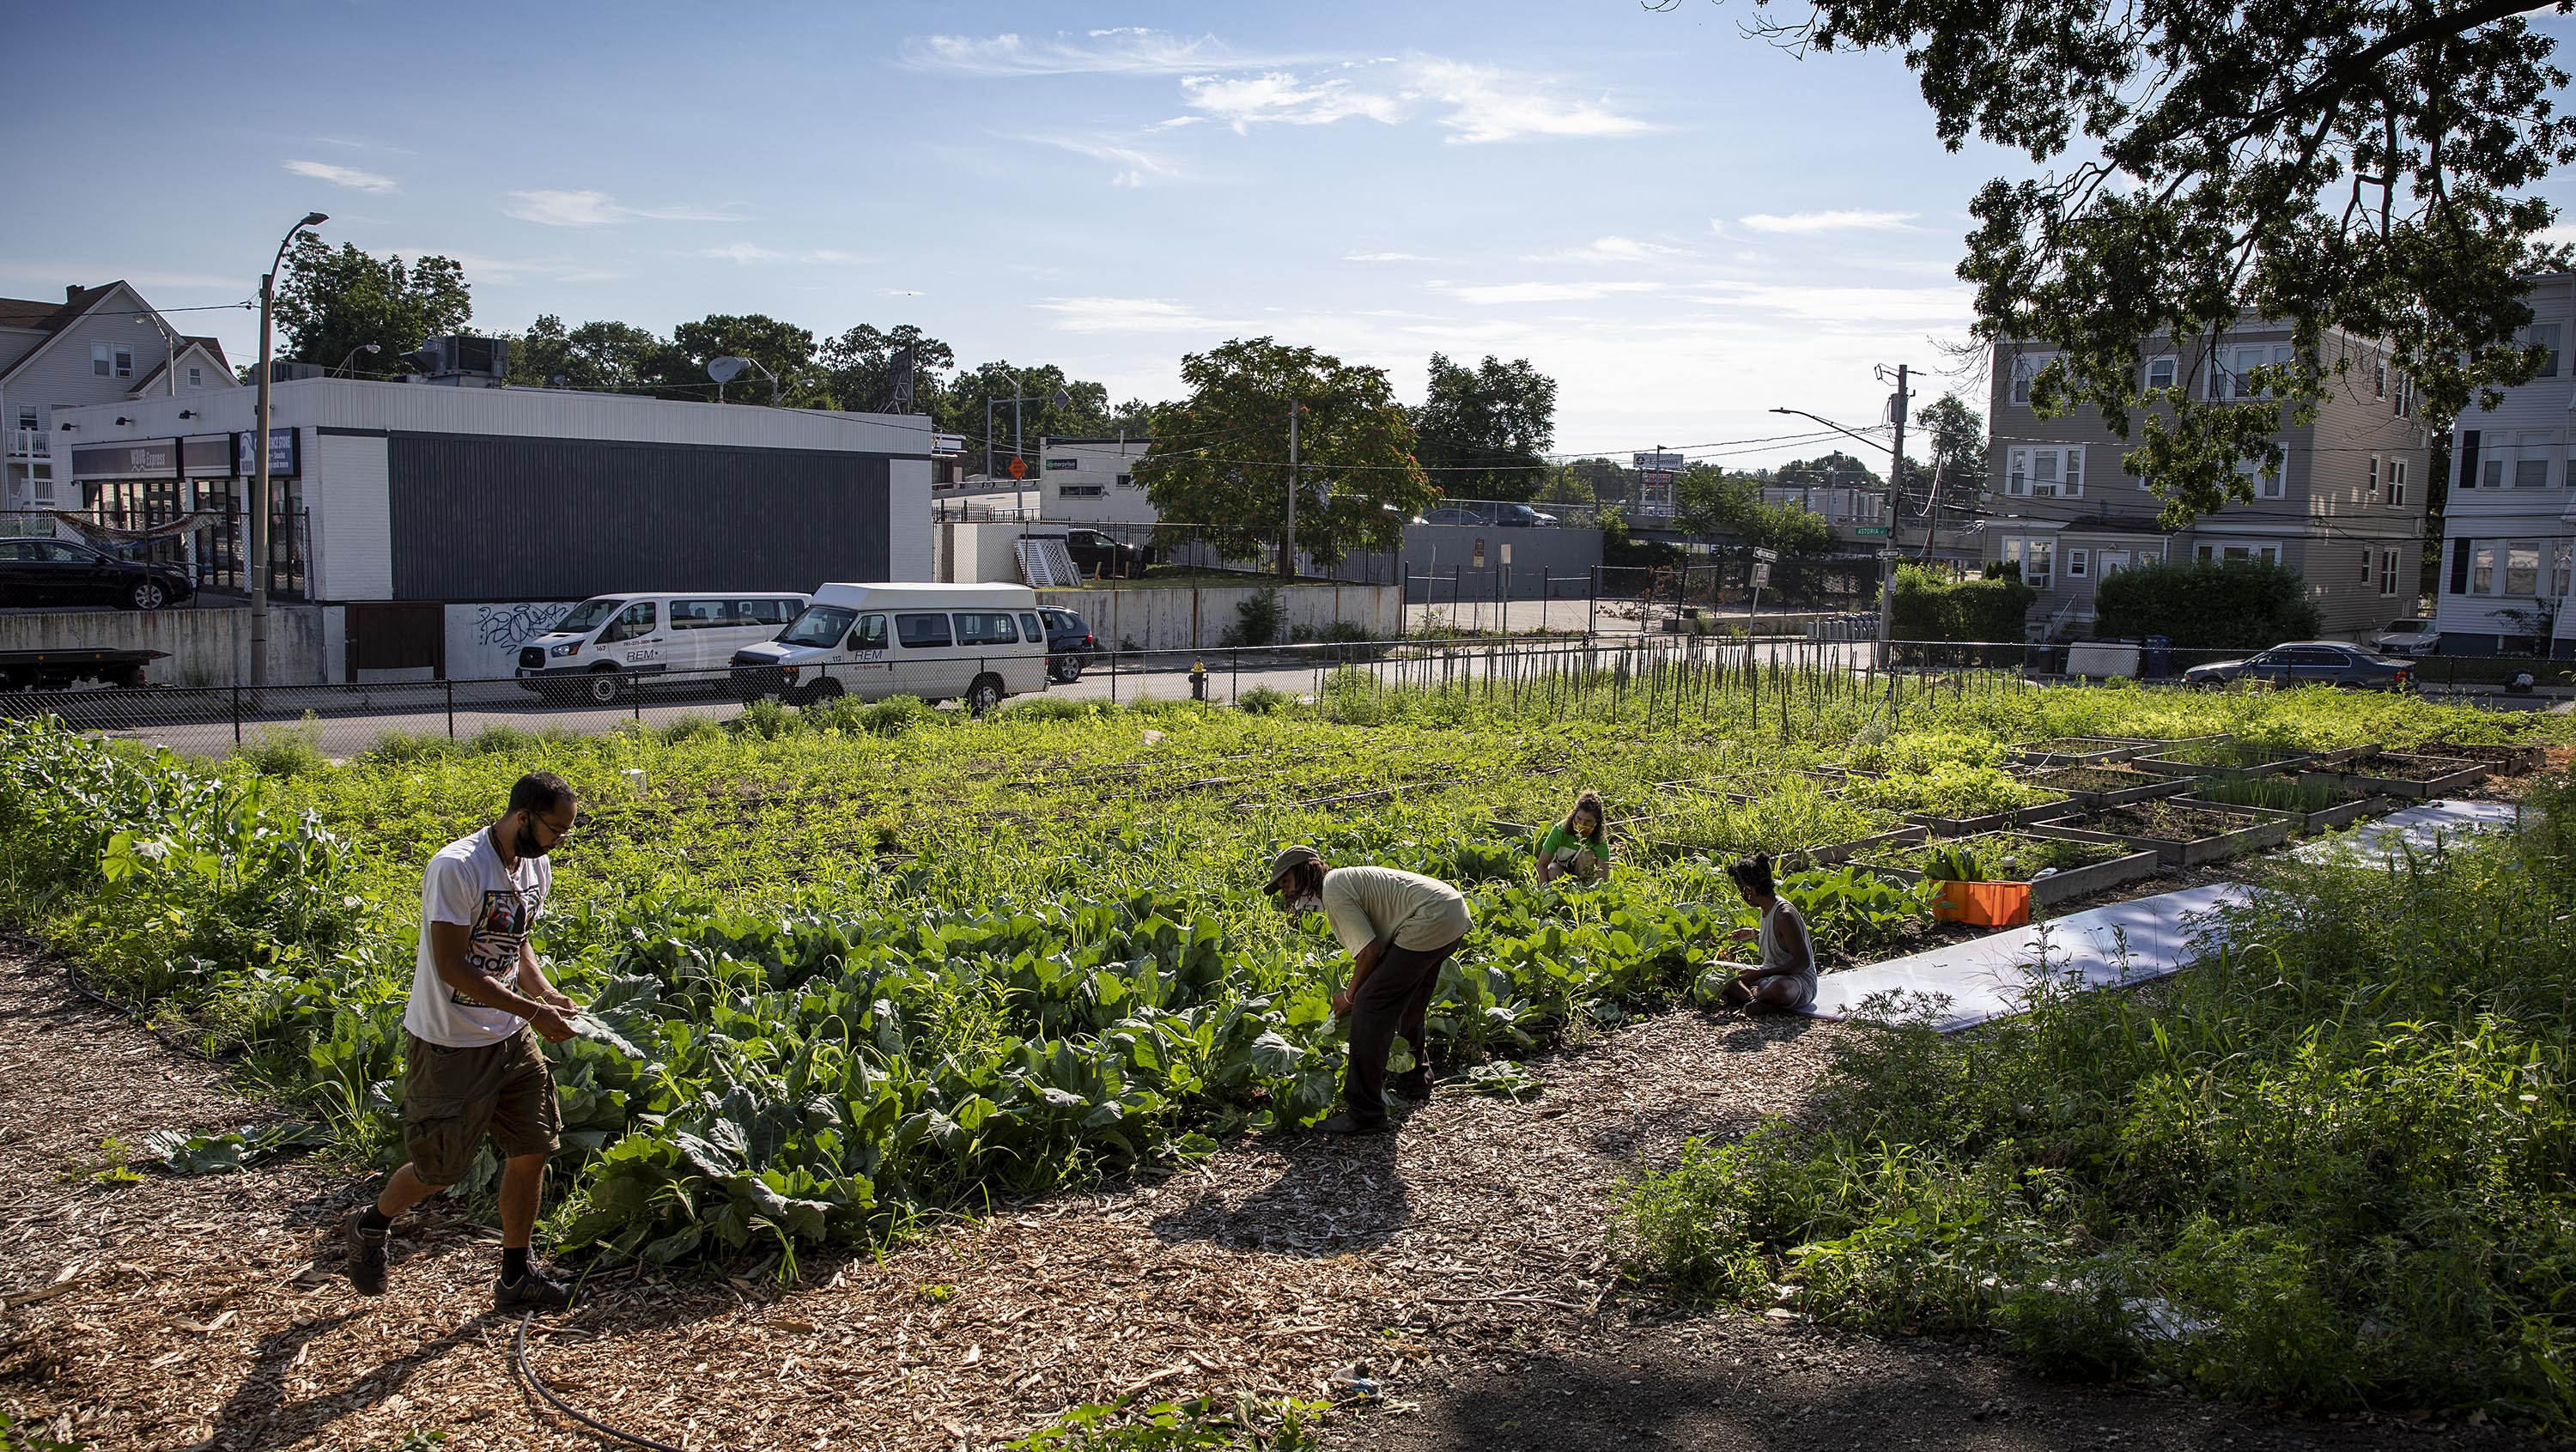 Training manager Bobby Walker instructs a group of UFI trainees on harvesting collard greens. (Robin Lubbock/WBUR)